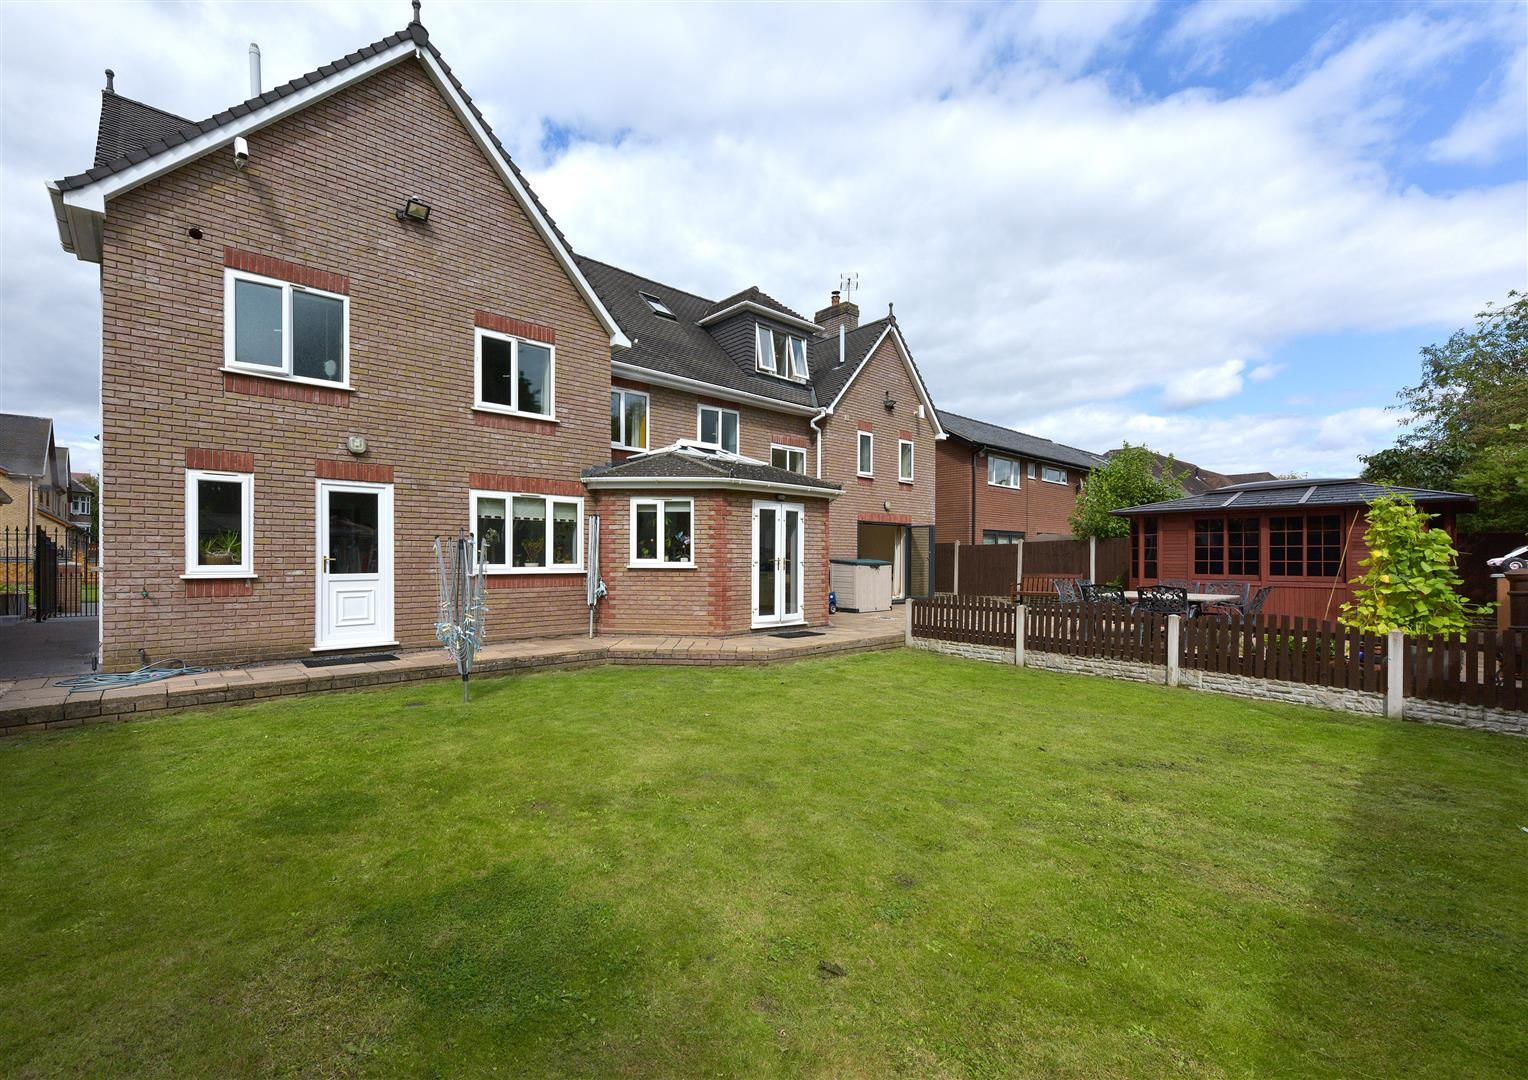 8 bed detached for sale 26